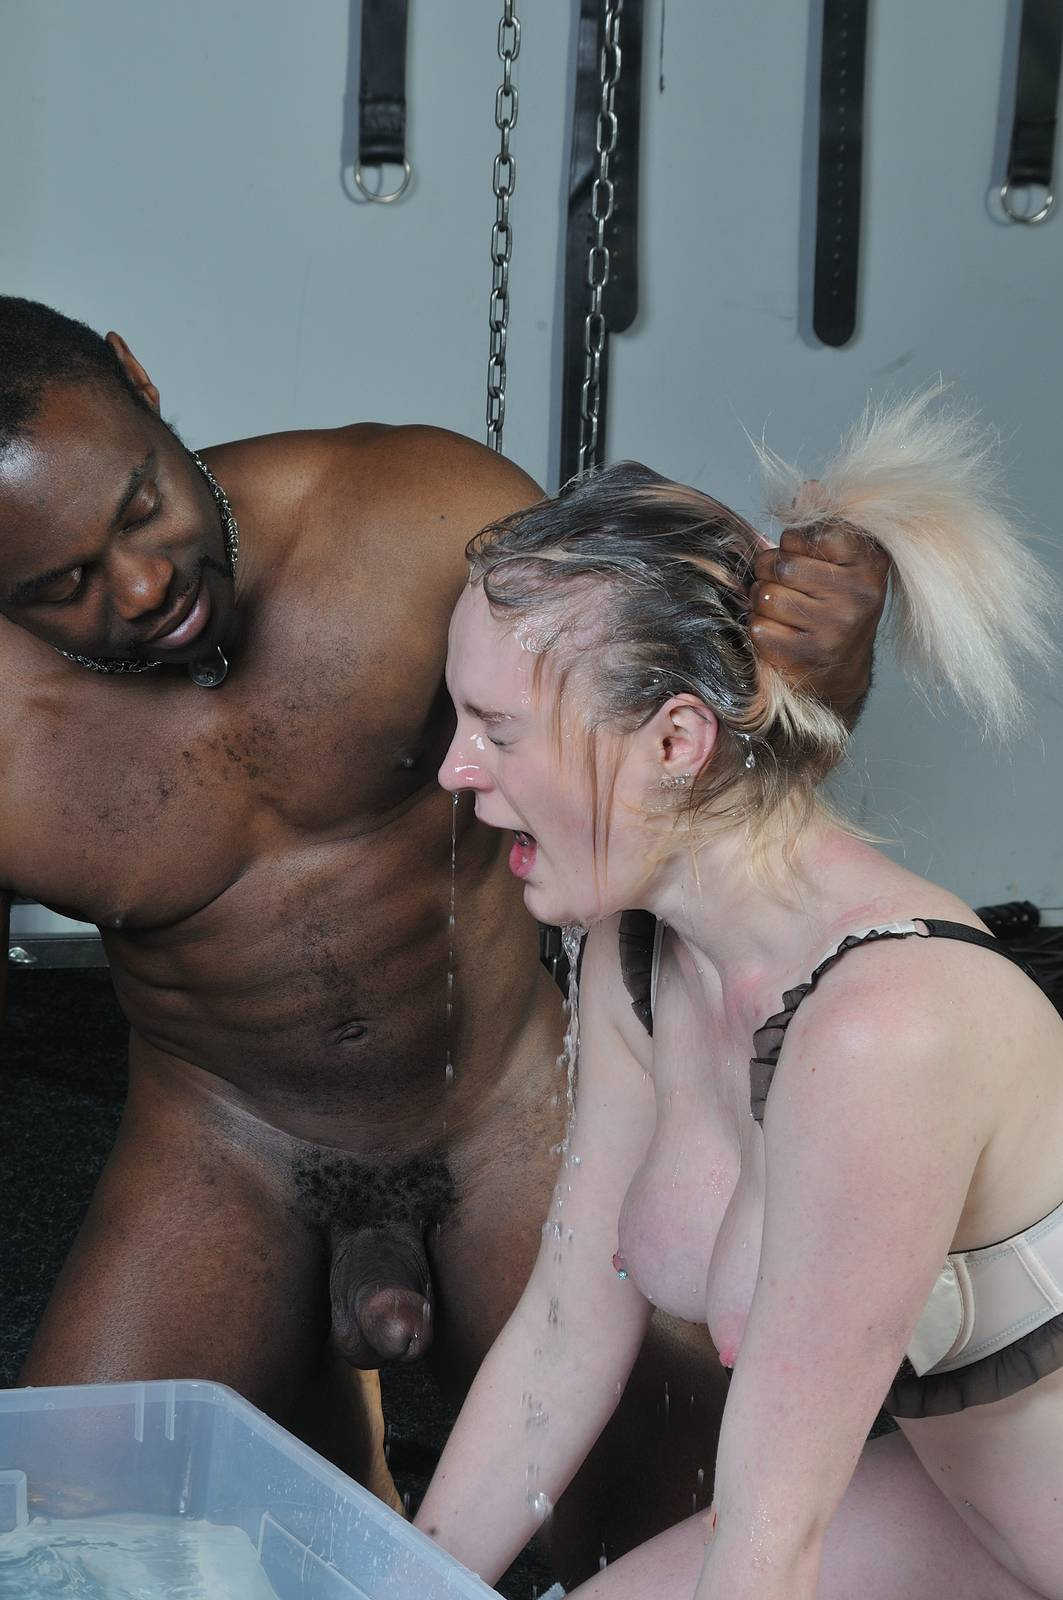 interracial submissive wife sex